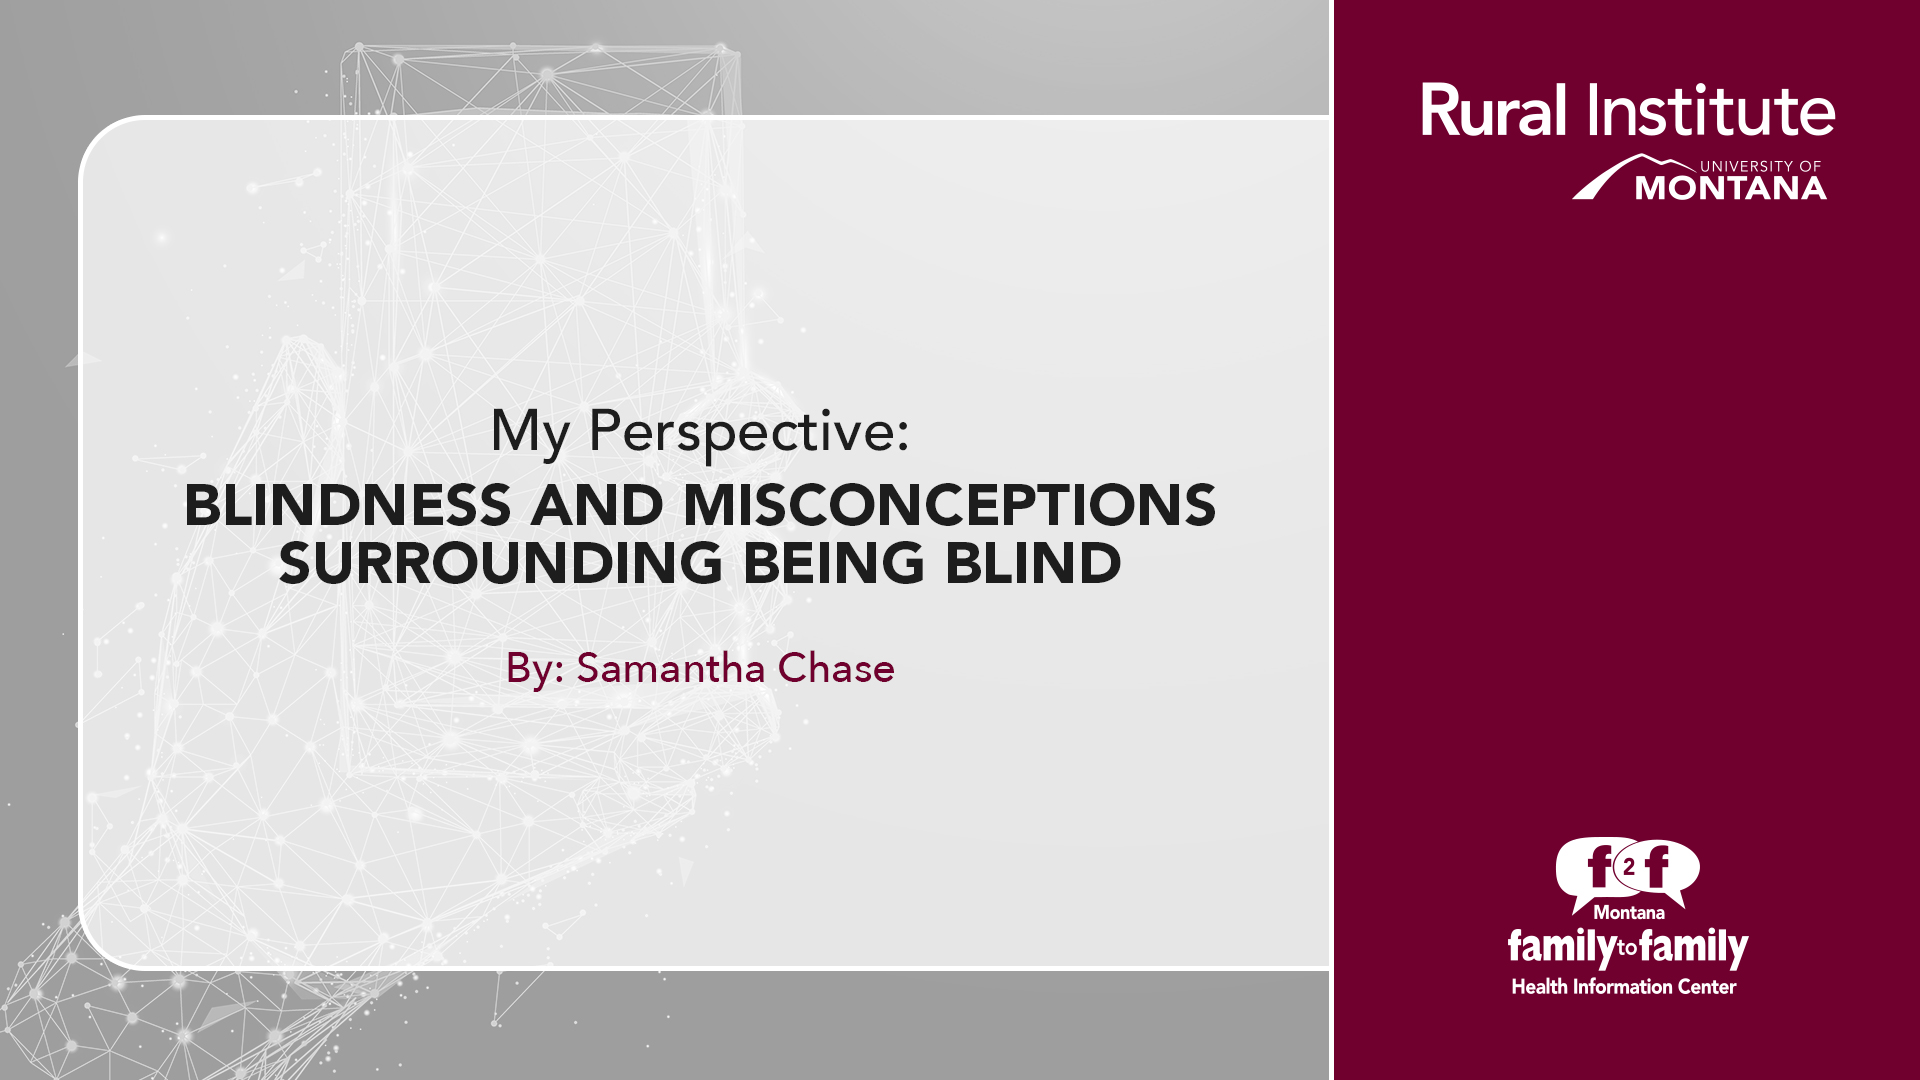 My Perspective: Blindness and Misconceptions Surrounding Being Blind